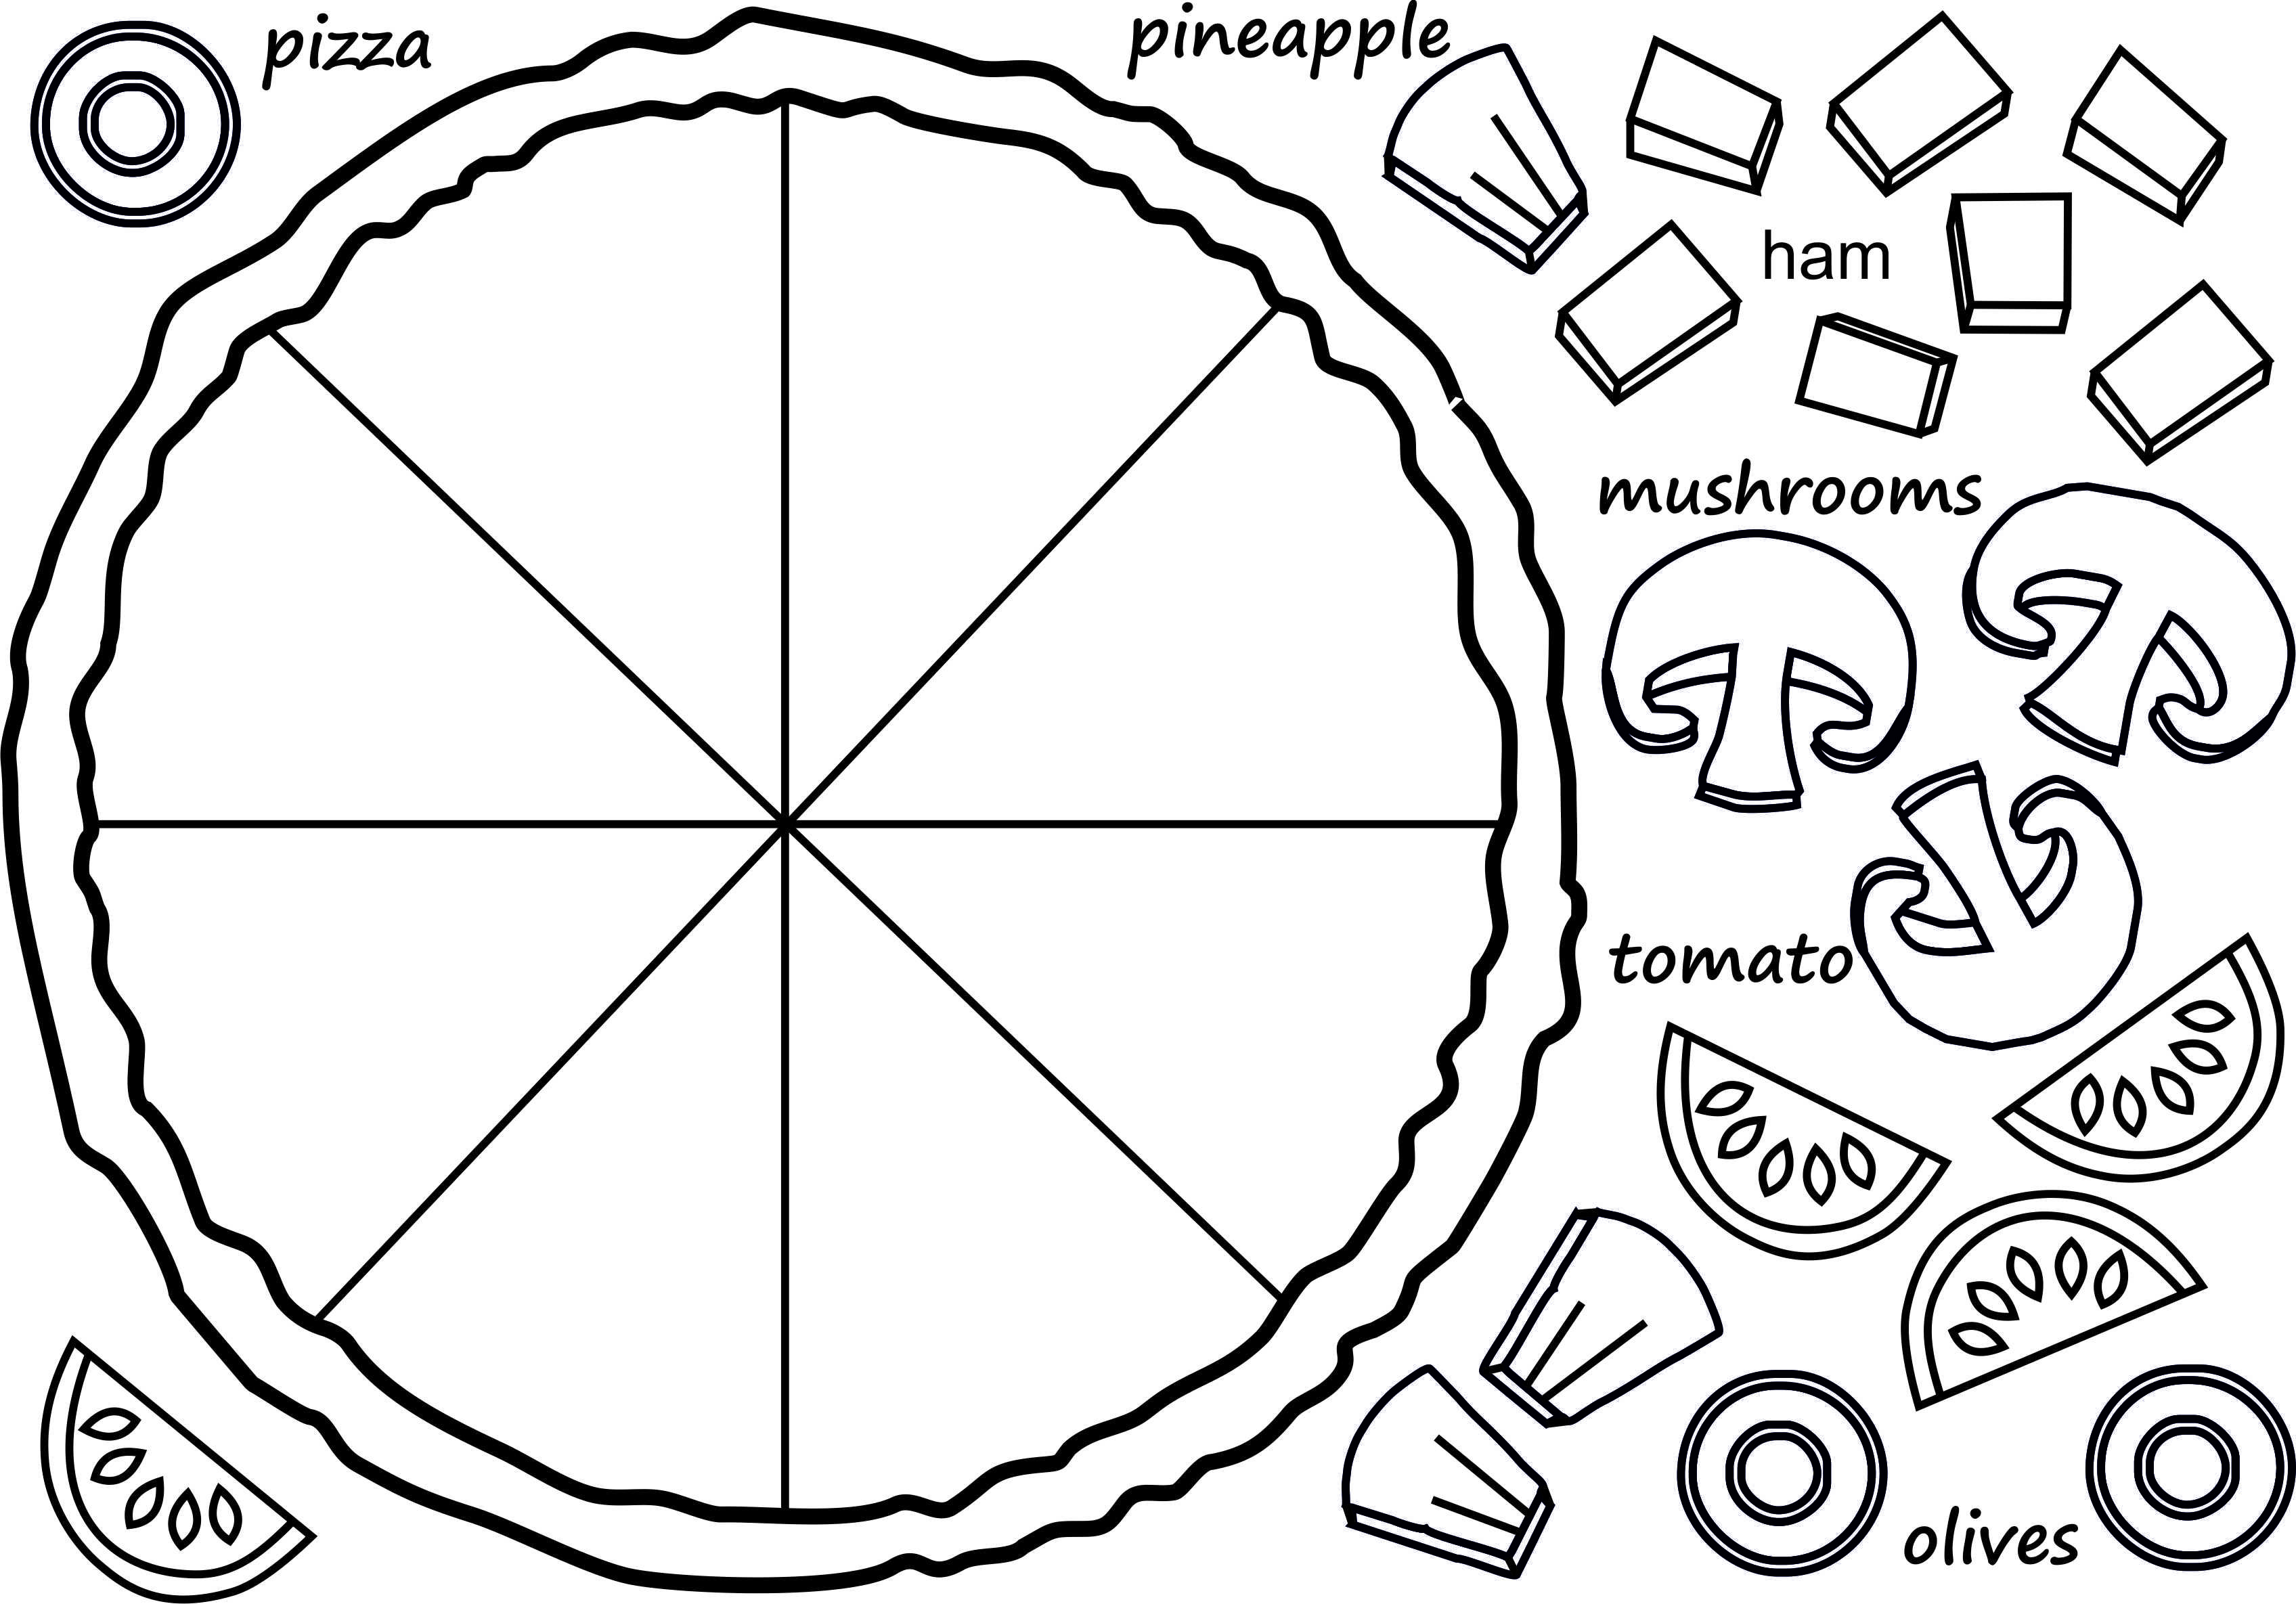 Make Your Own Pizza Make Your Own Pizza Fractions Preschool Activity